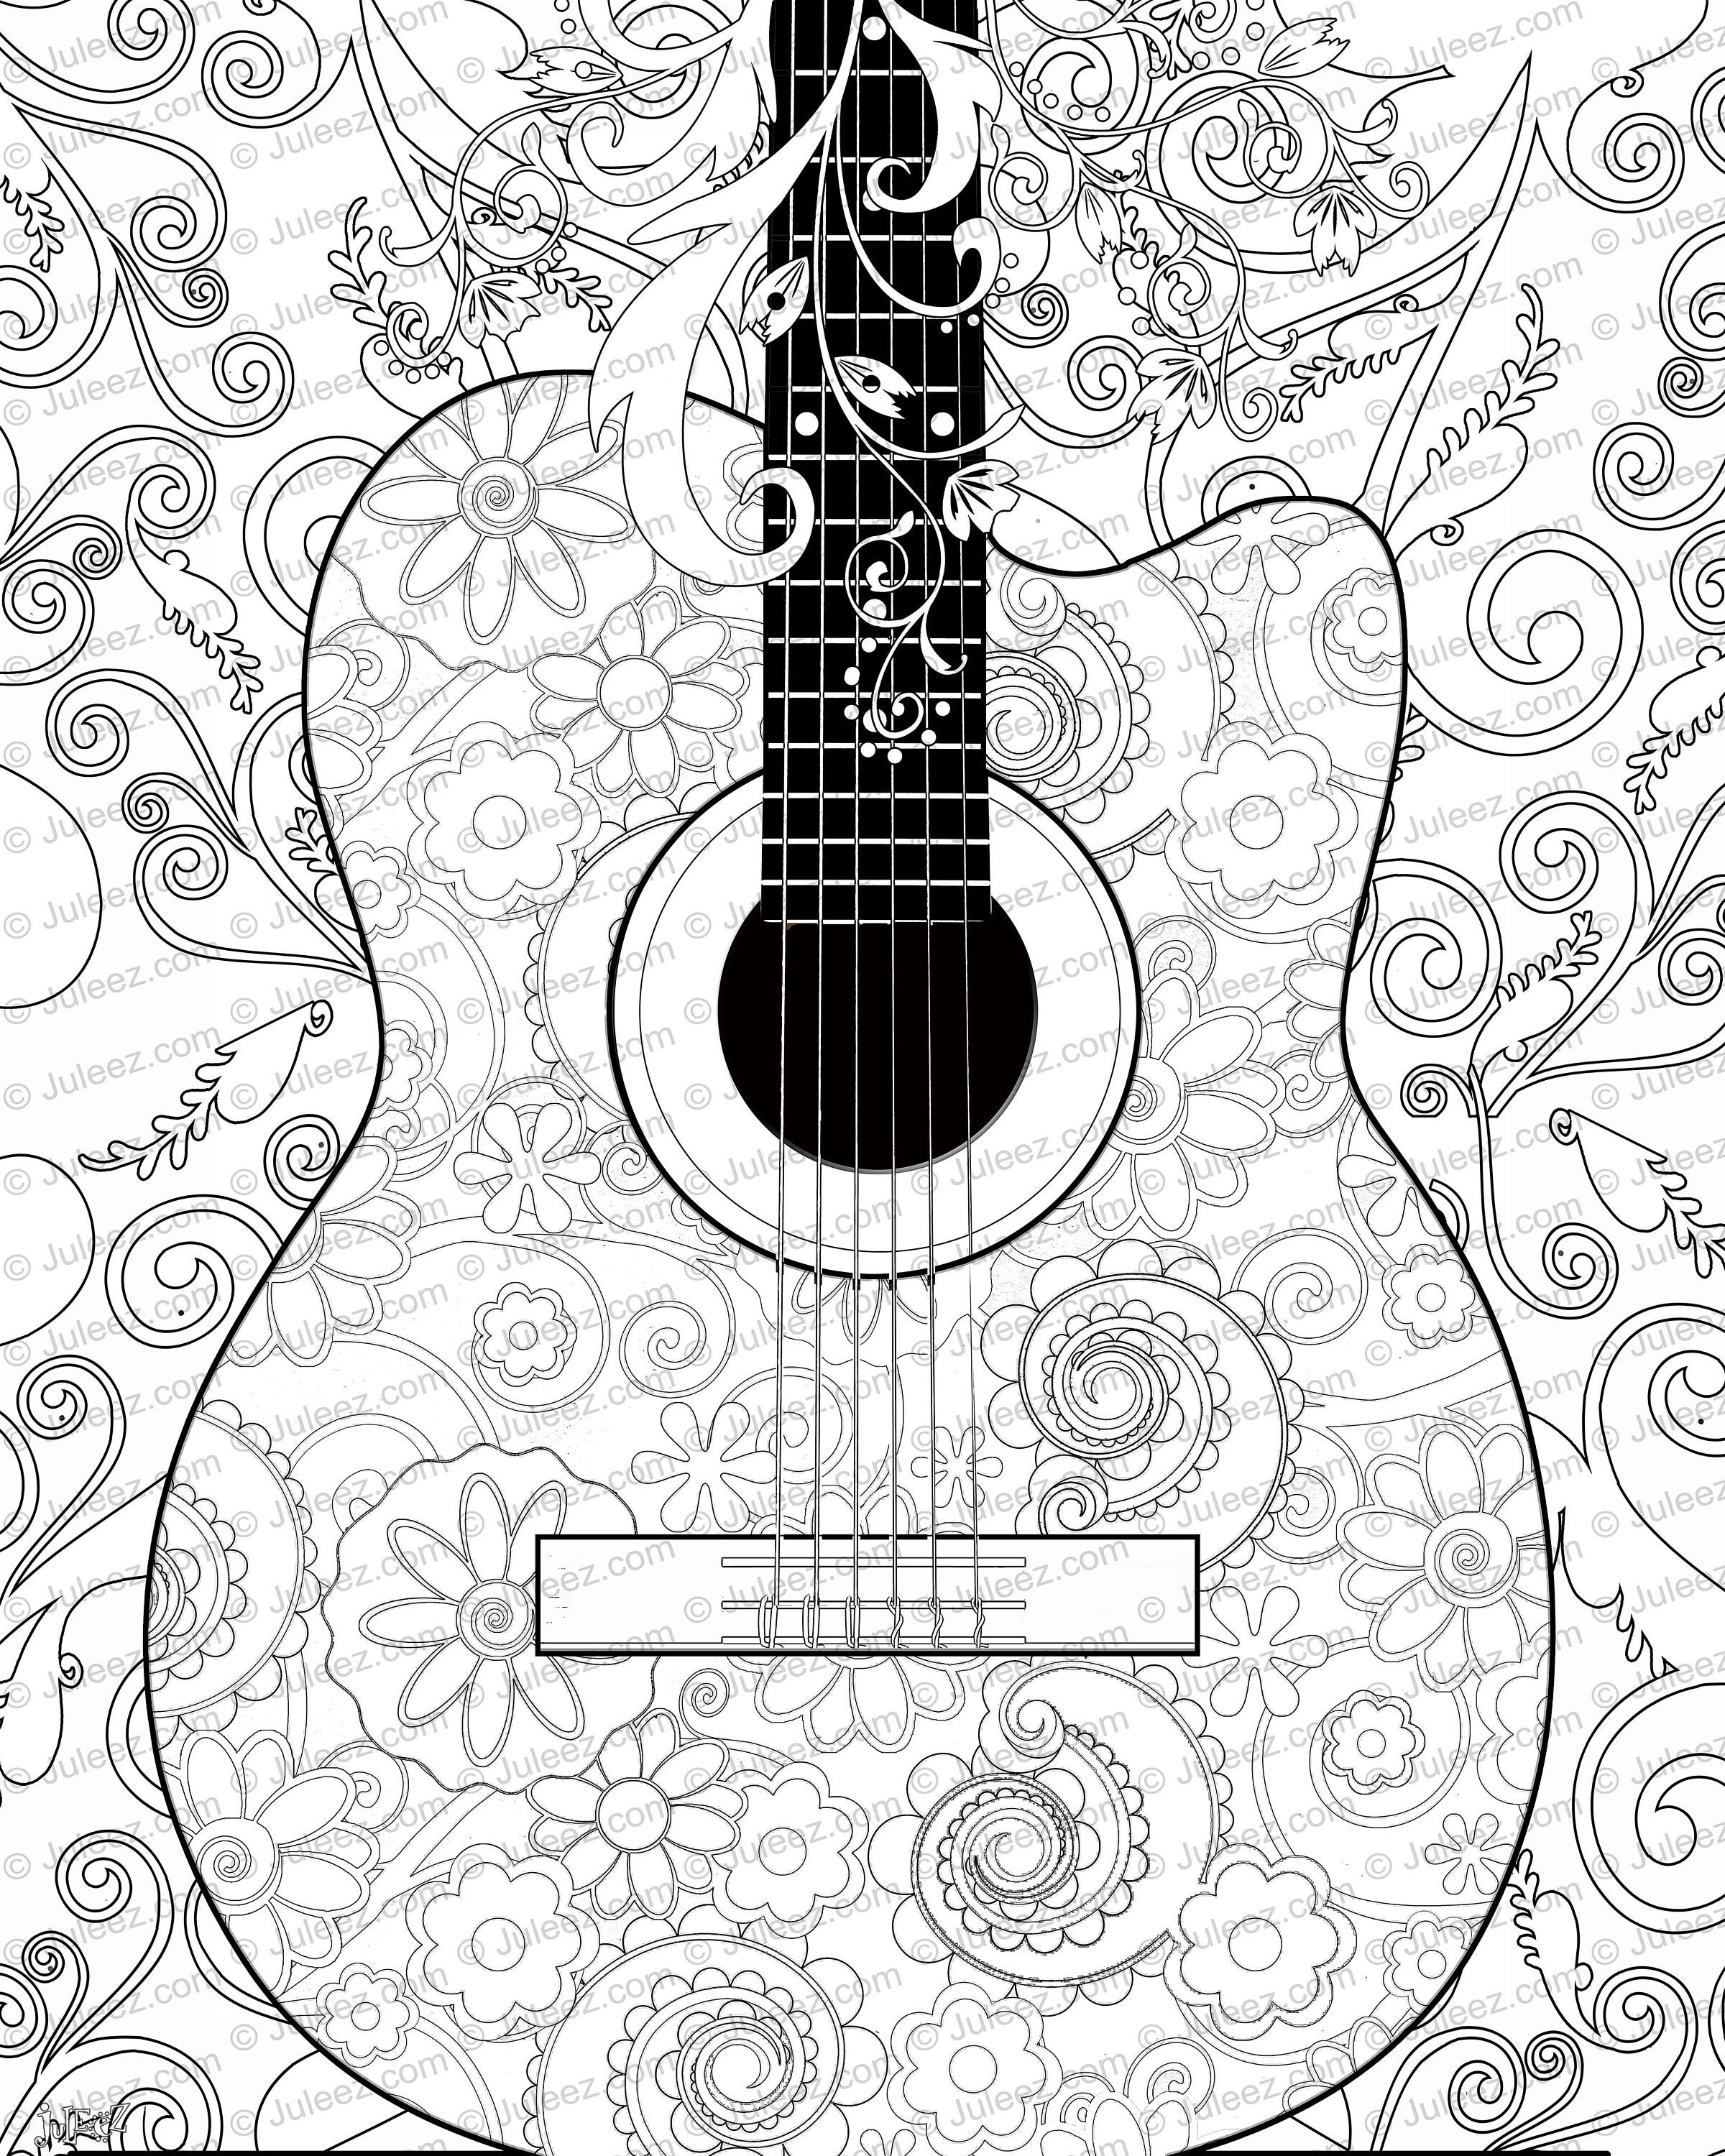 Guitar Flowers Coloring Poster Printable Guitar Coloring Poster